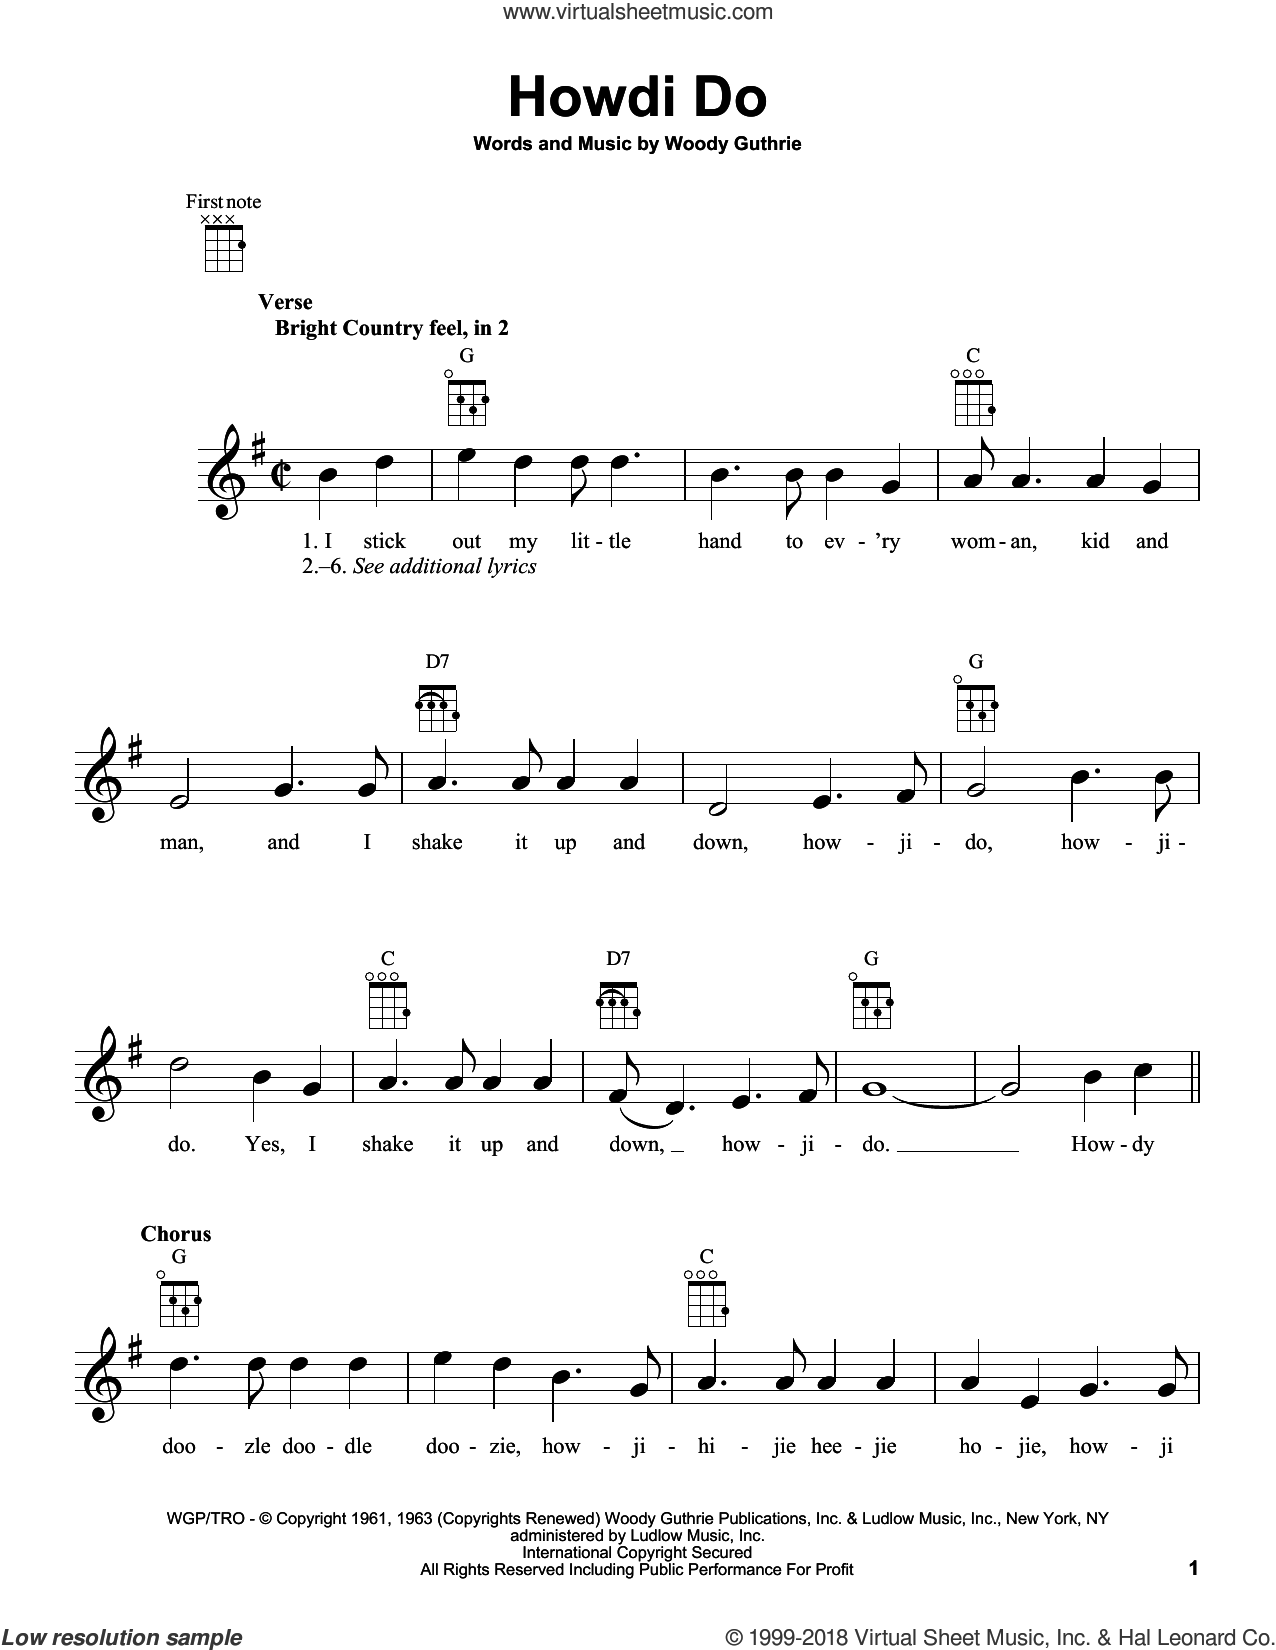 Howdi Do sheet music for ukulele by Woody Guthrie, intermediate skill level